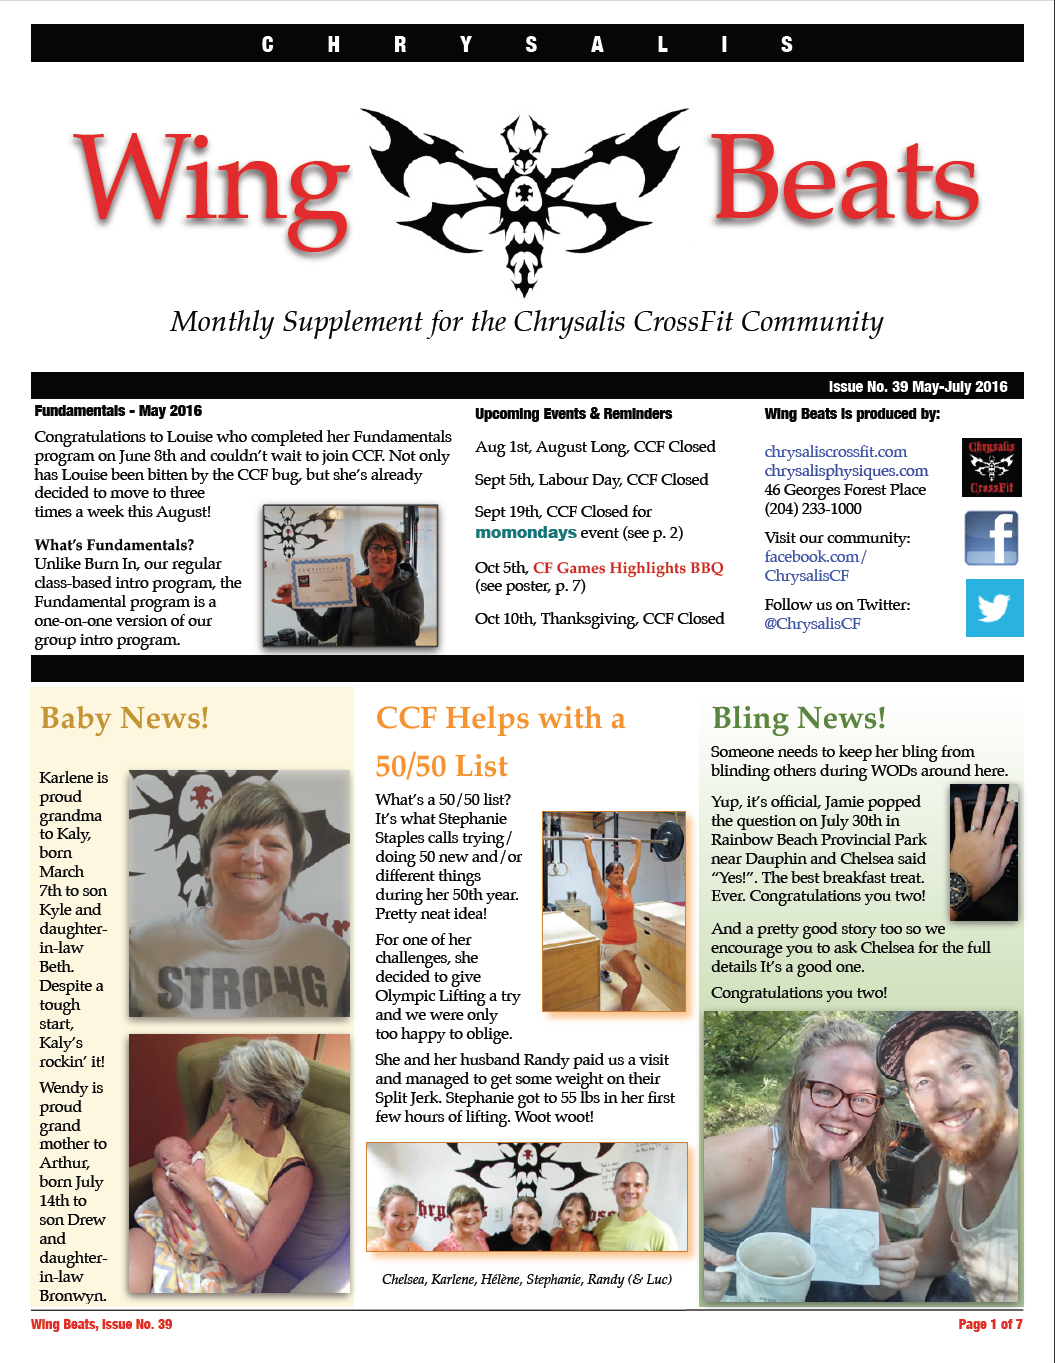 WingBeats Issue #39 - MayJul 2016